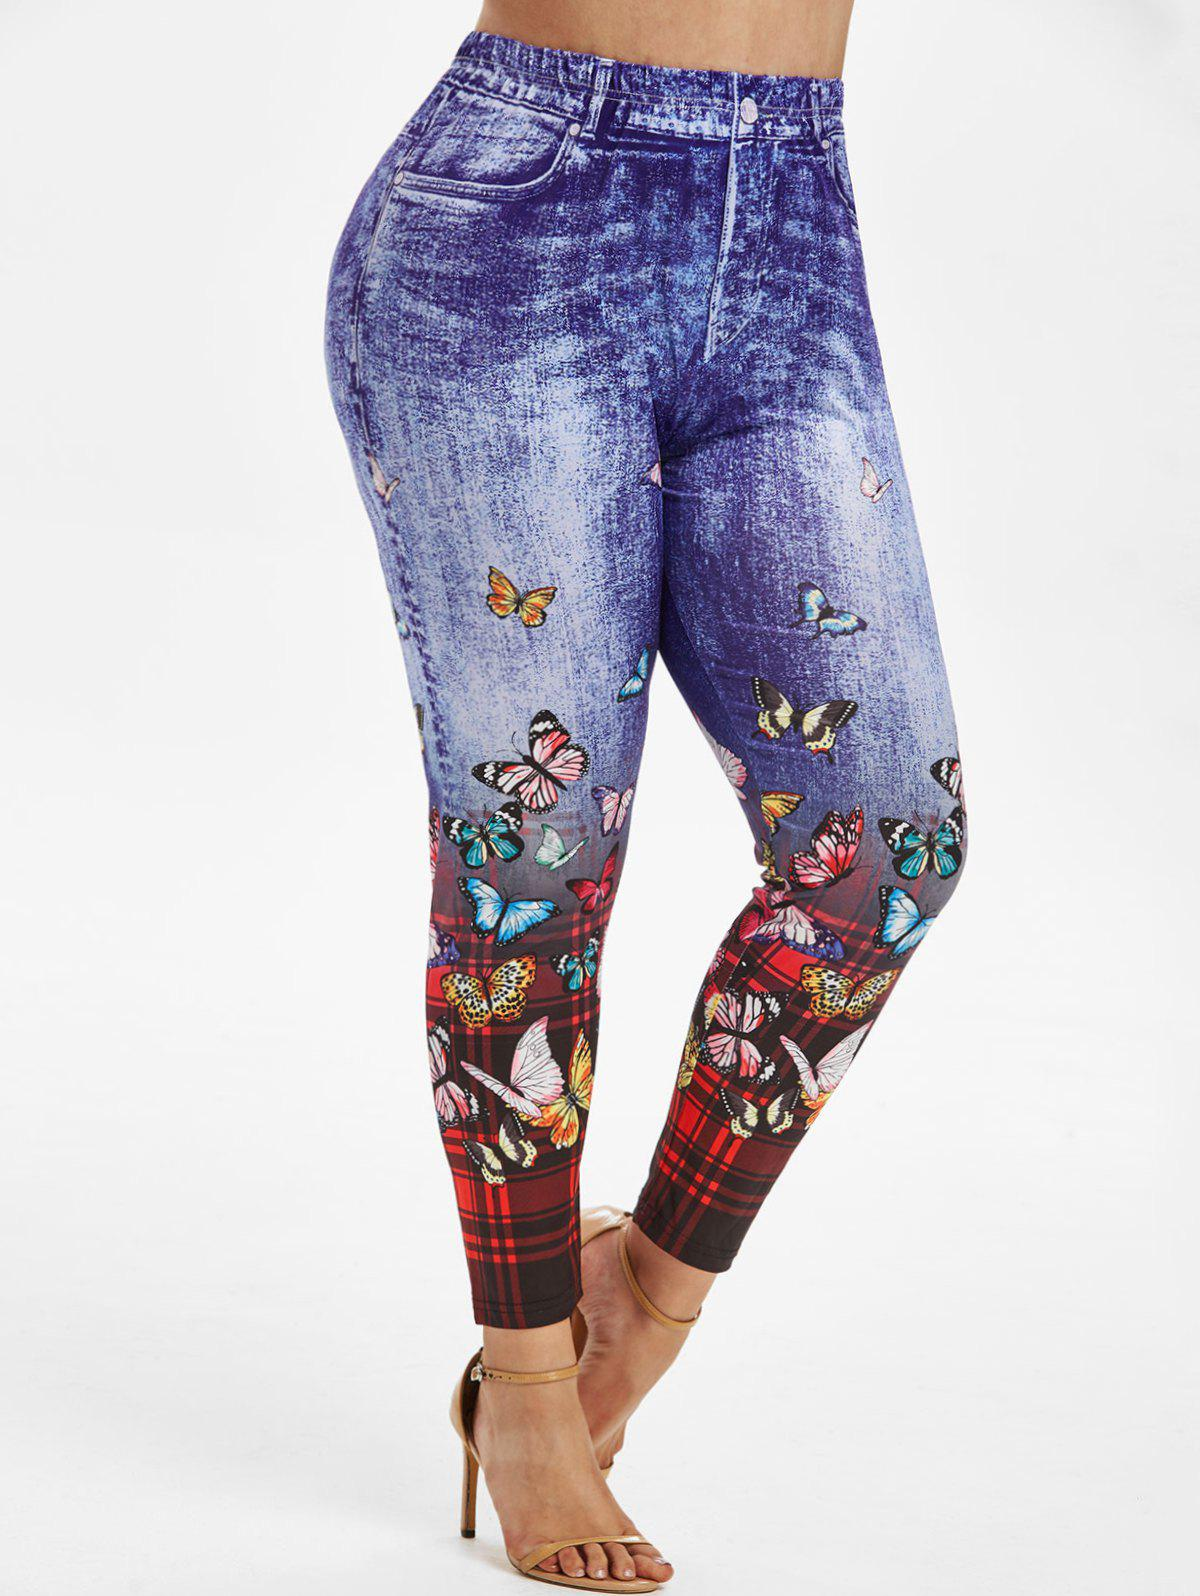 Plaid Butterfly 3D Print High Waisted Plus Size Jeggings - BLUE 5X